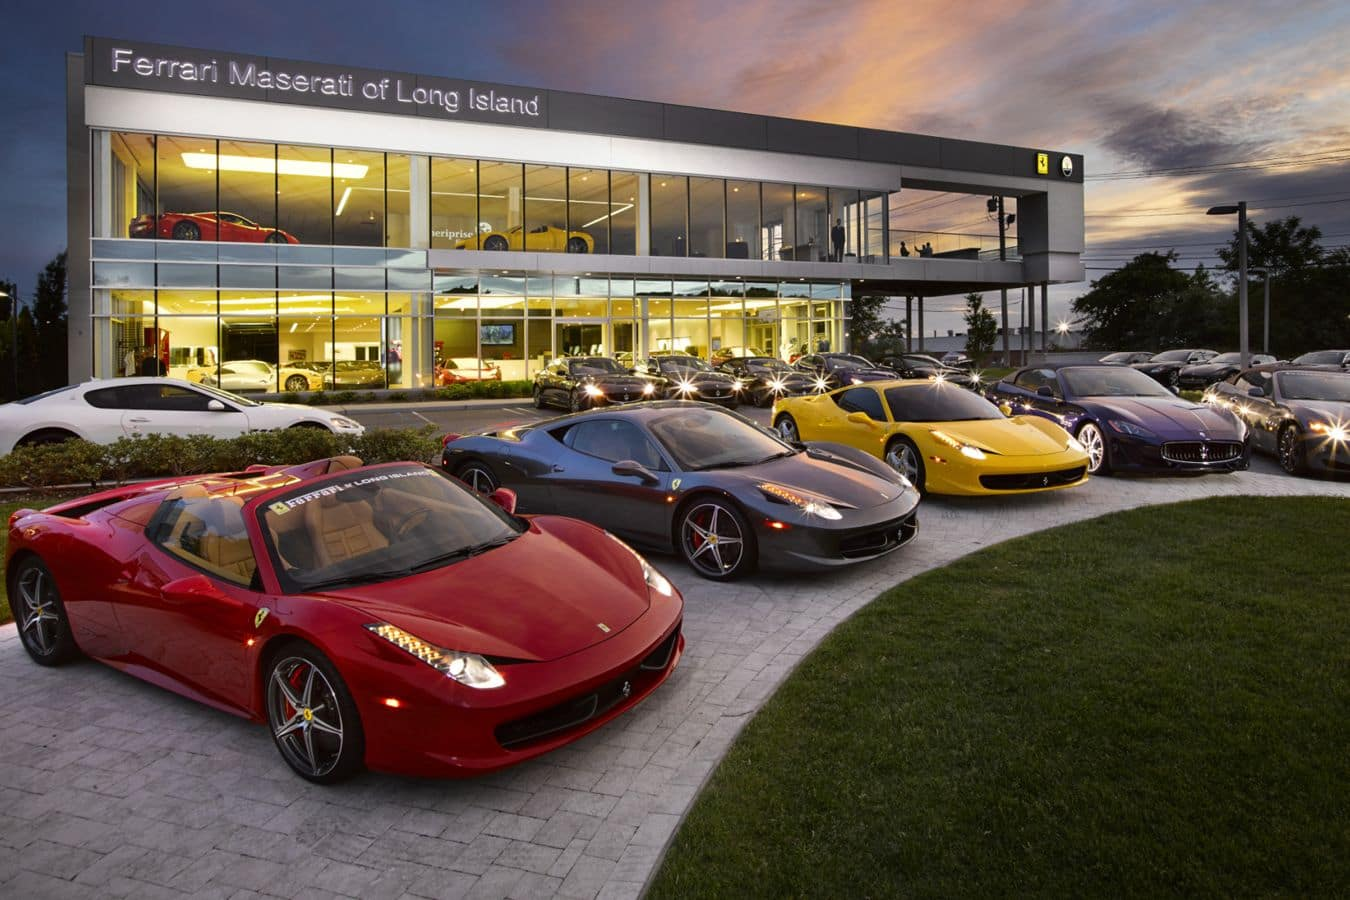 Ferrari Of Long Island Your Official Ferrari Dealership In Ny